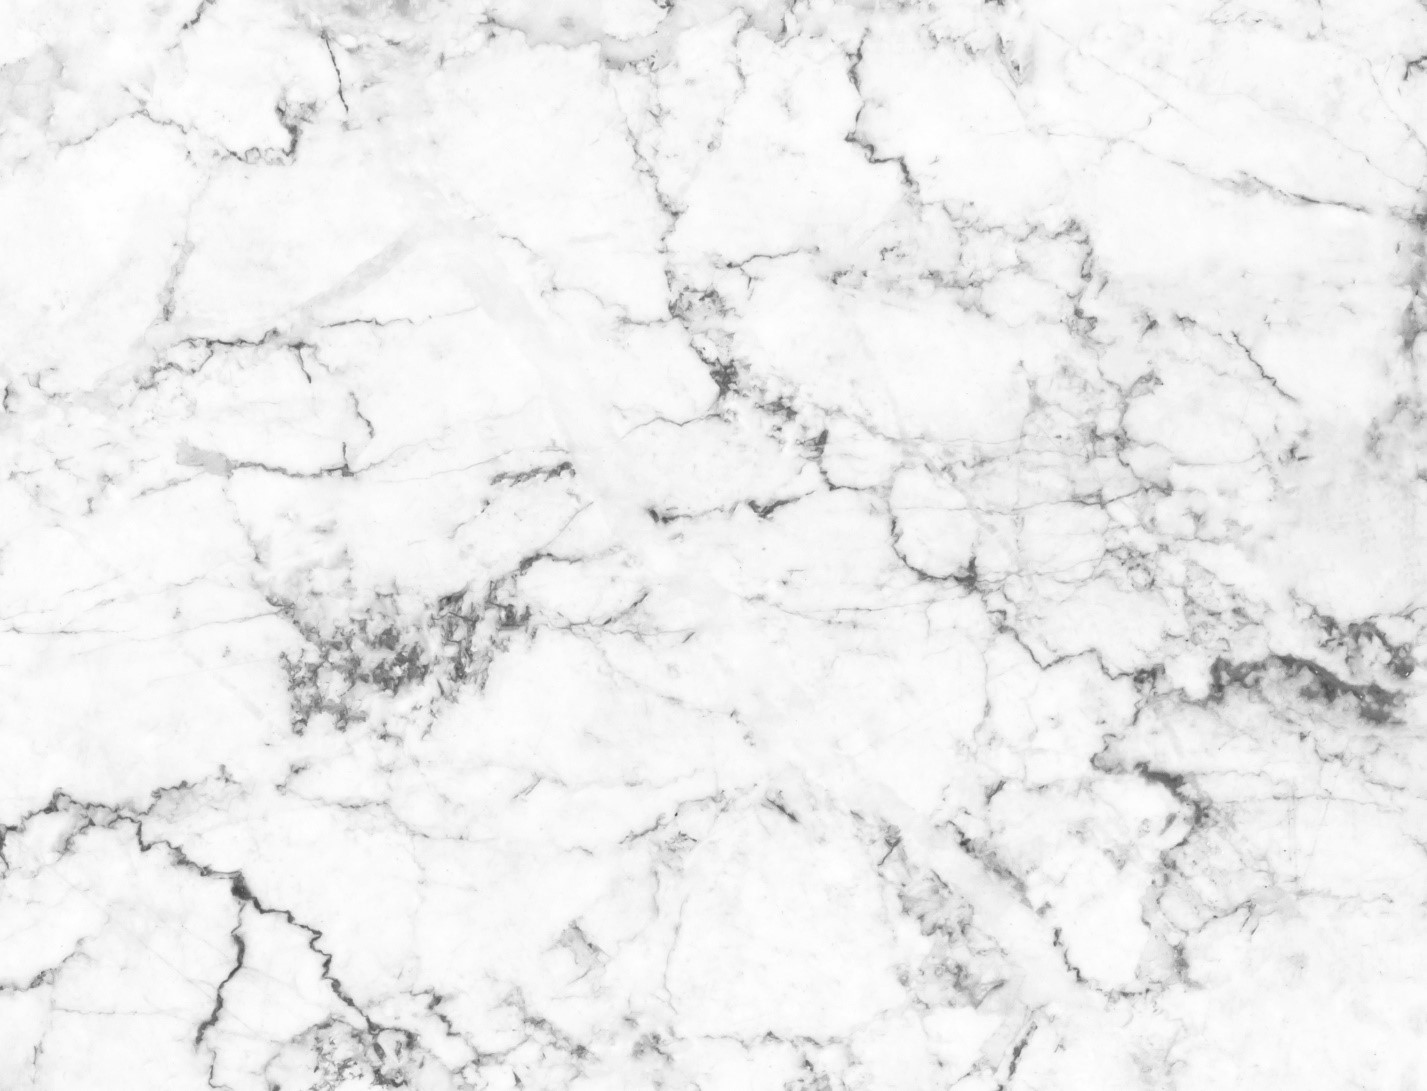 Marble Countertops: 6 Fun Facts | Mommyswall